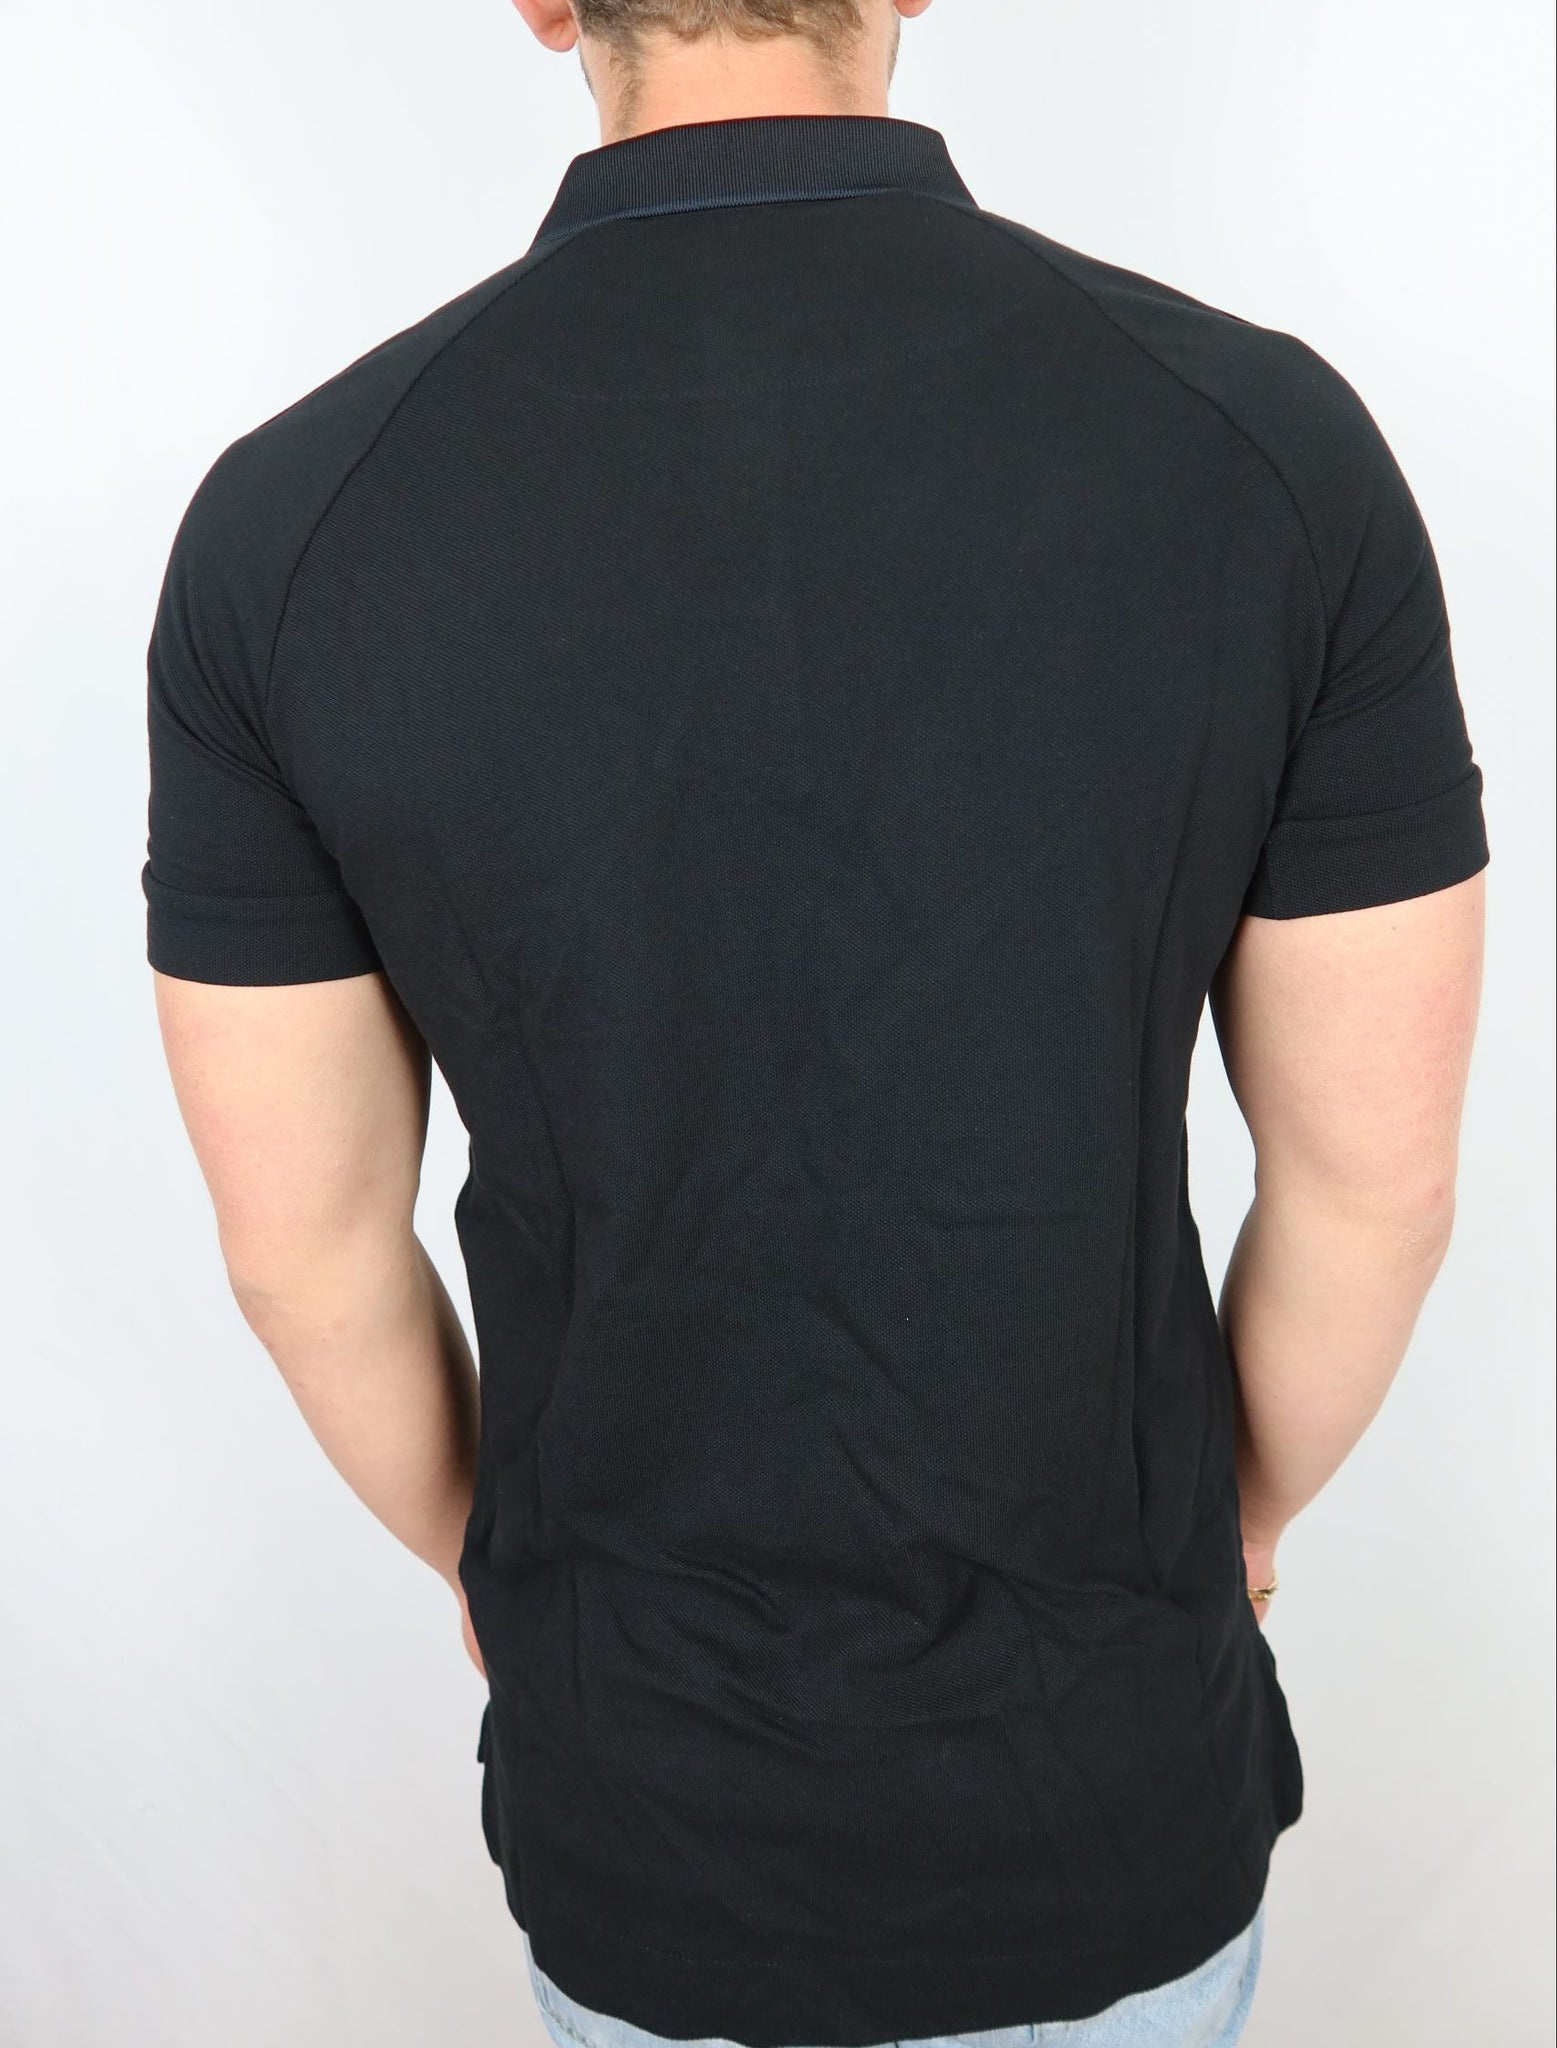 Plain Black A/X Collar Shirt With Shoulder Logo